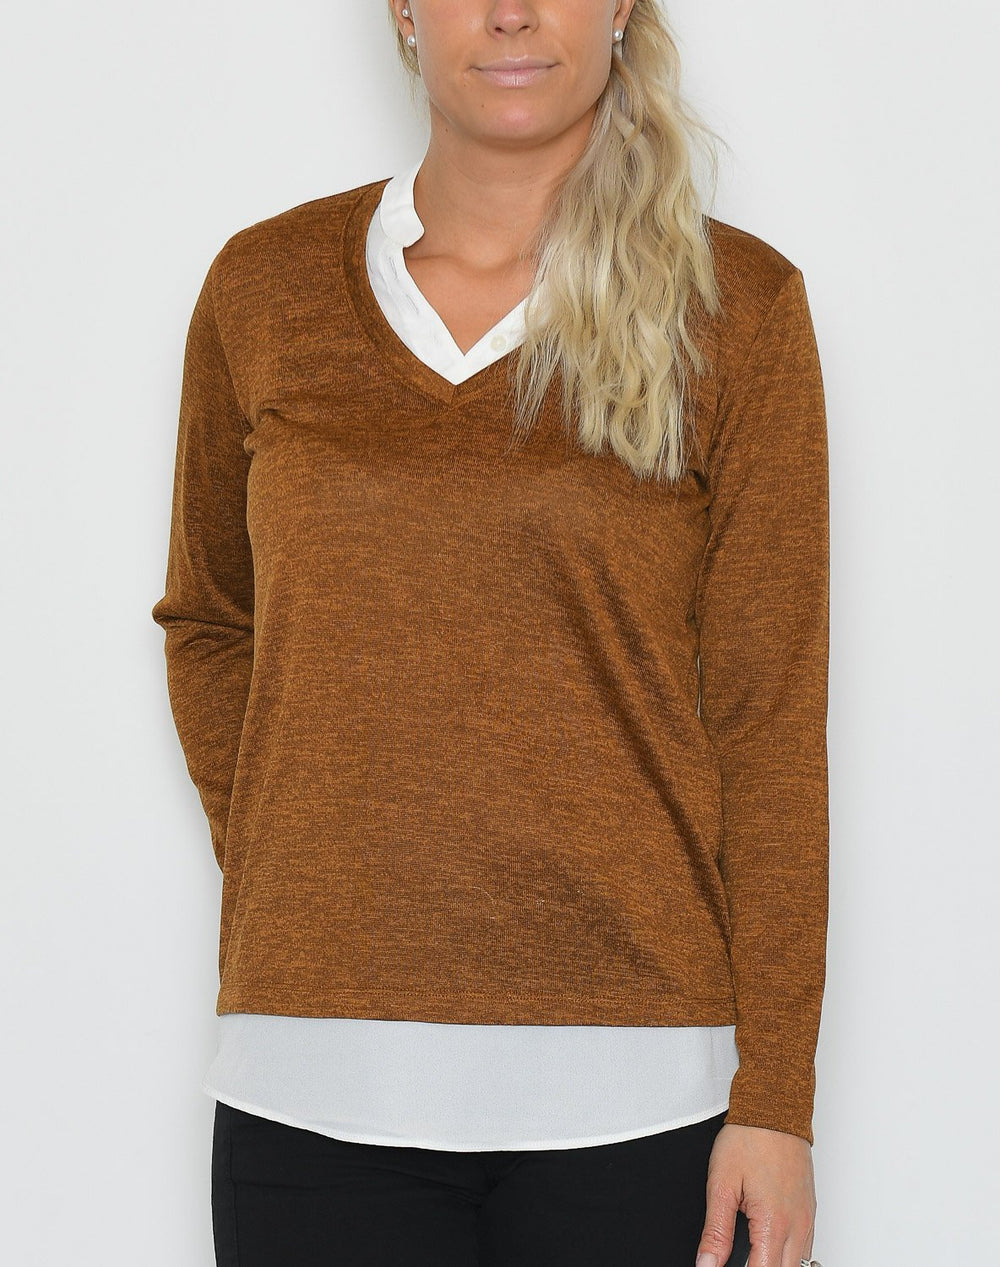 Fransa FRFirexan 1 bluse cathay spice - Online-Mode